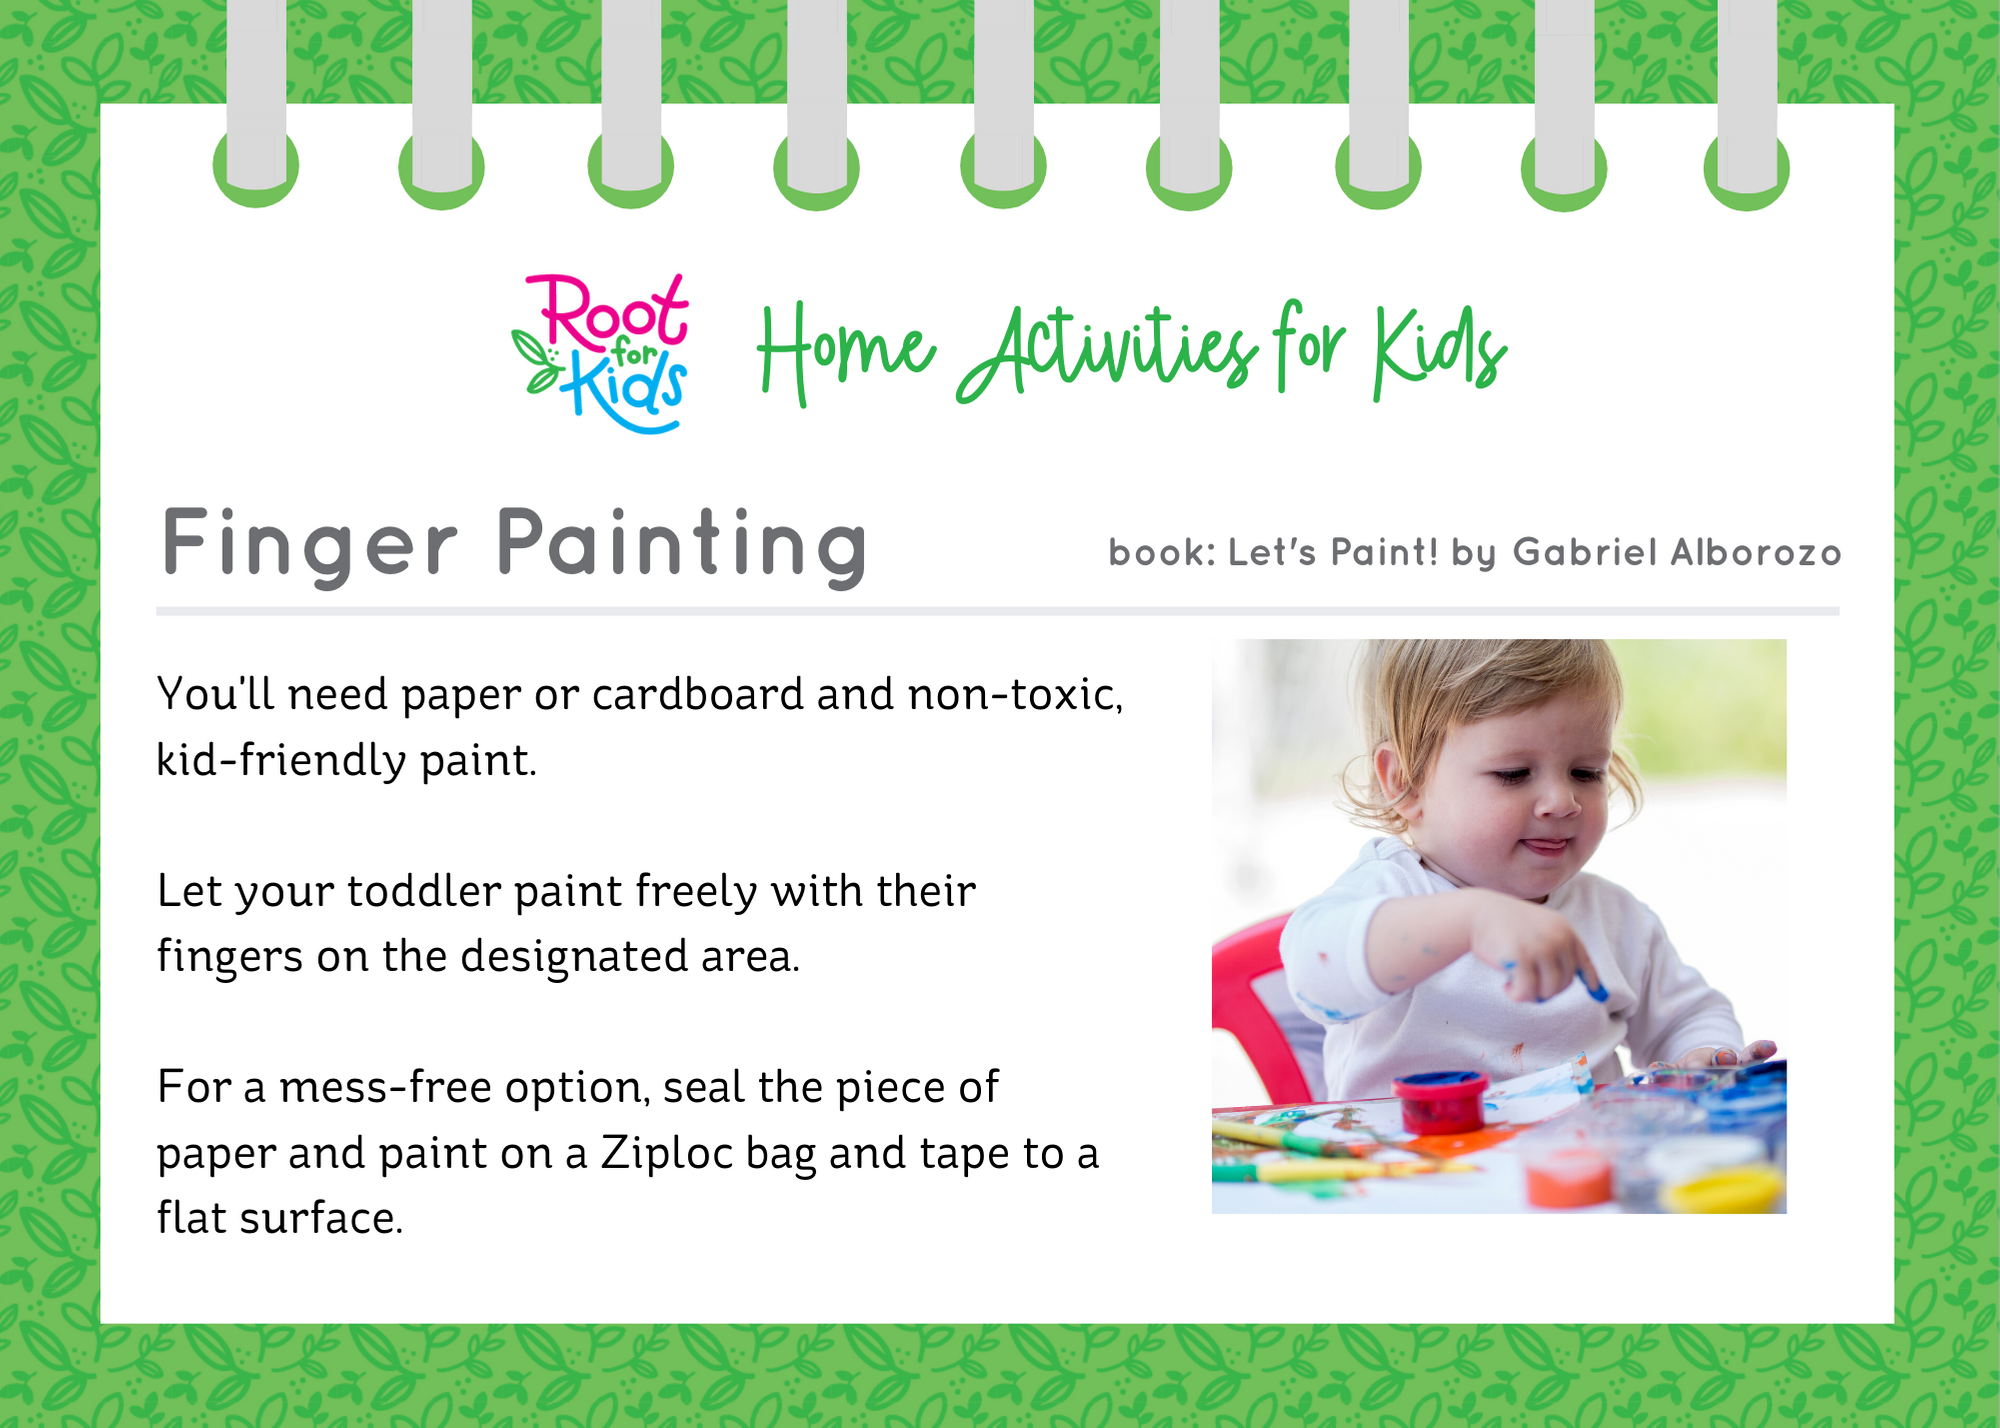 More Home Activities for Kids | Root for Kids